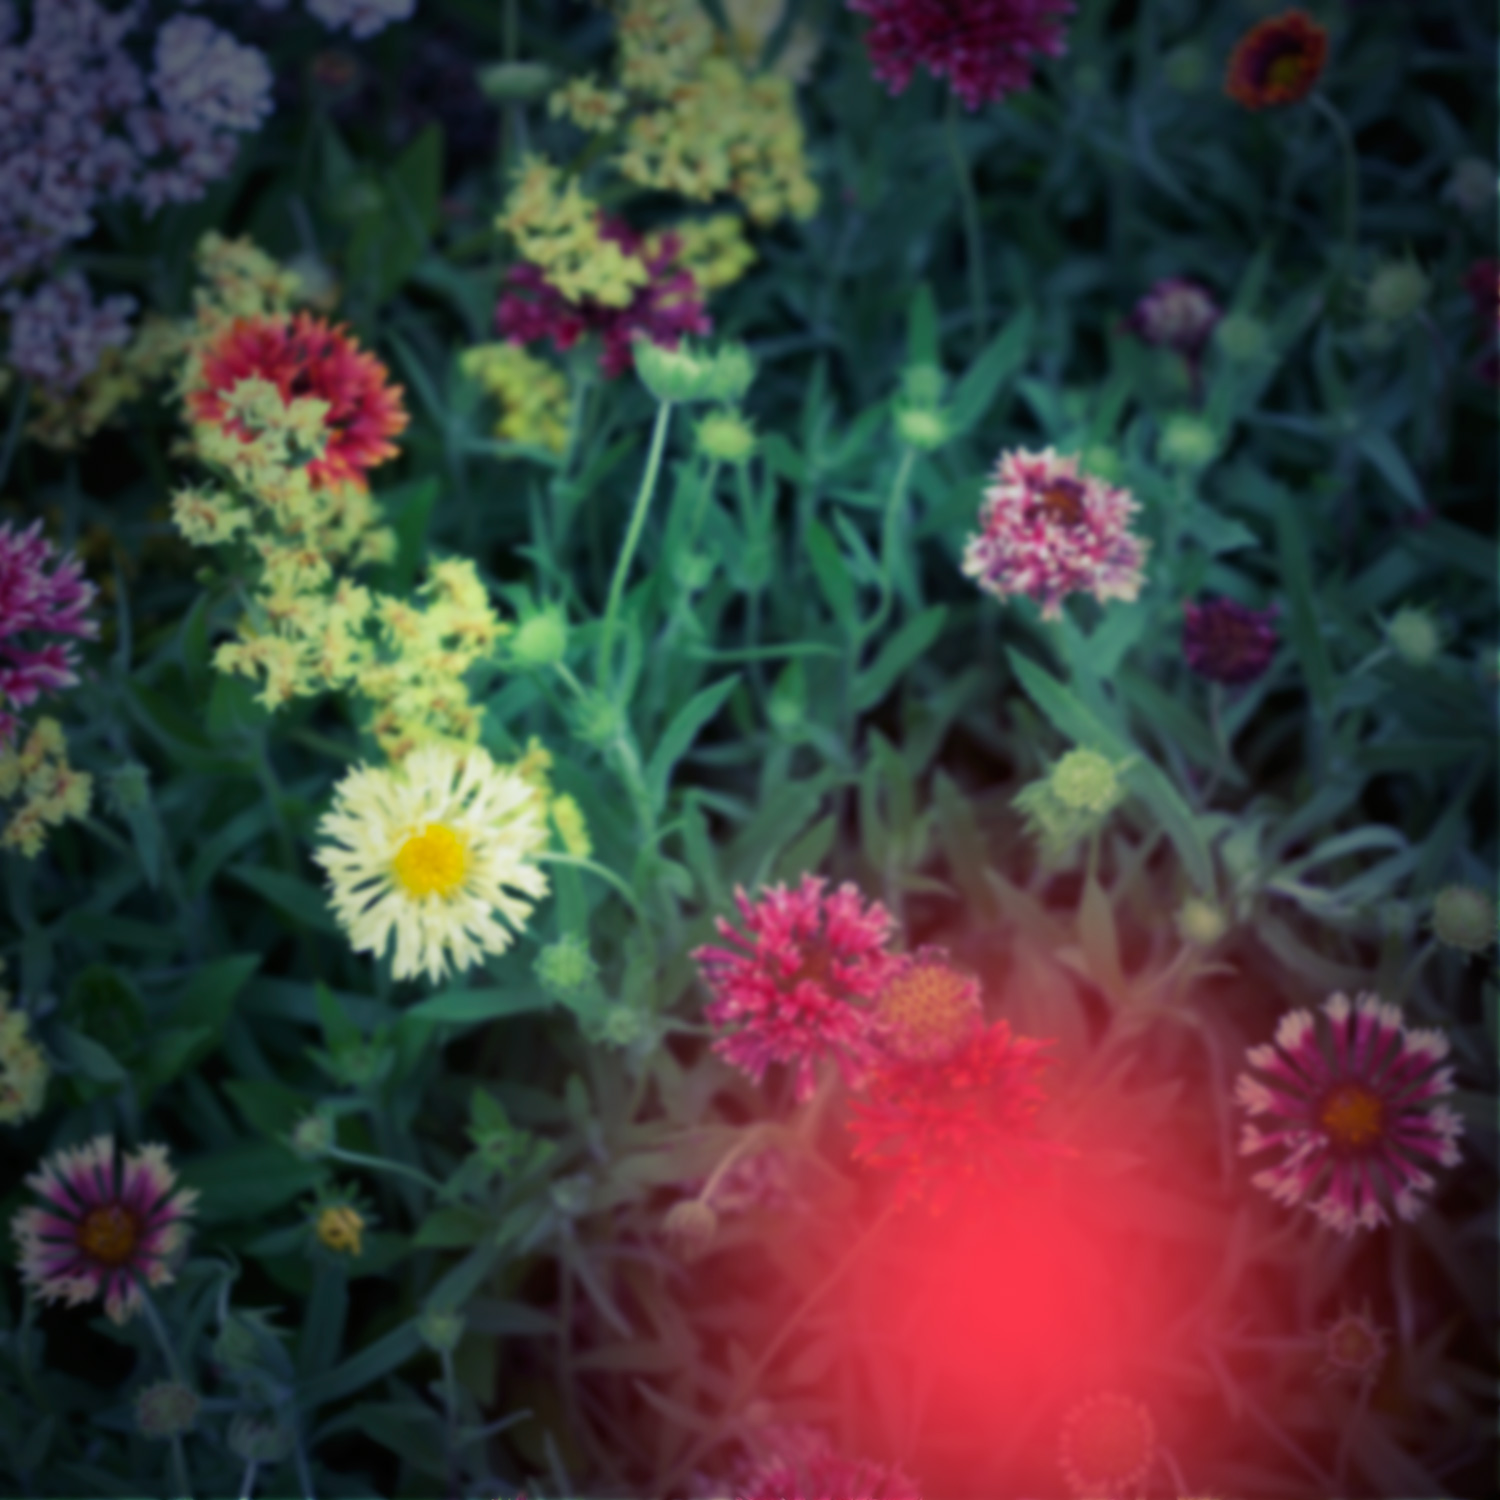 How to Add a Toy Camera Effect to Your Digital Images Using Photoshop